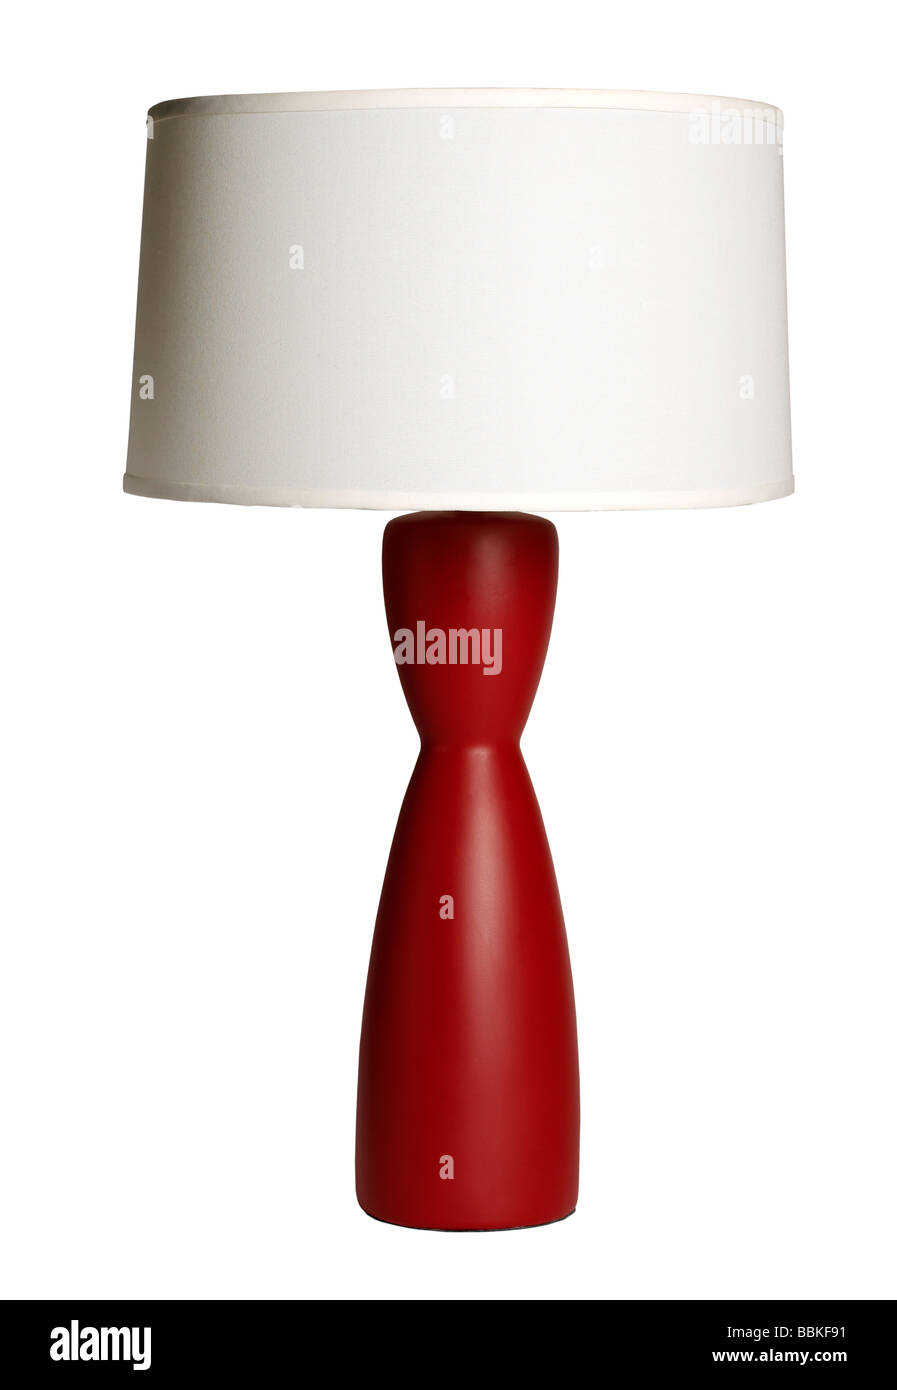 table lamp - Stock Image